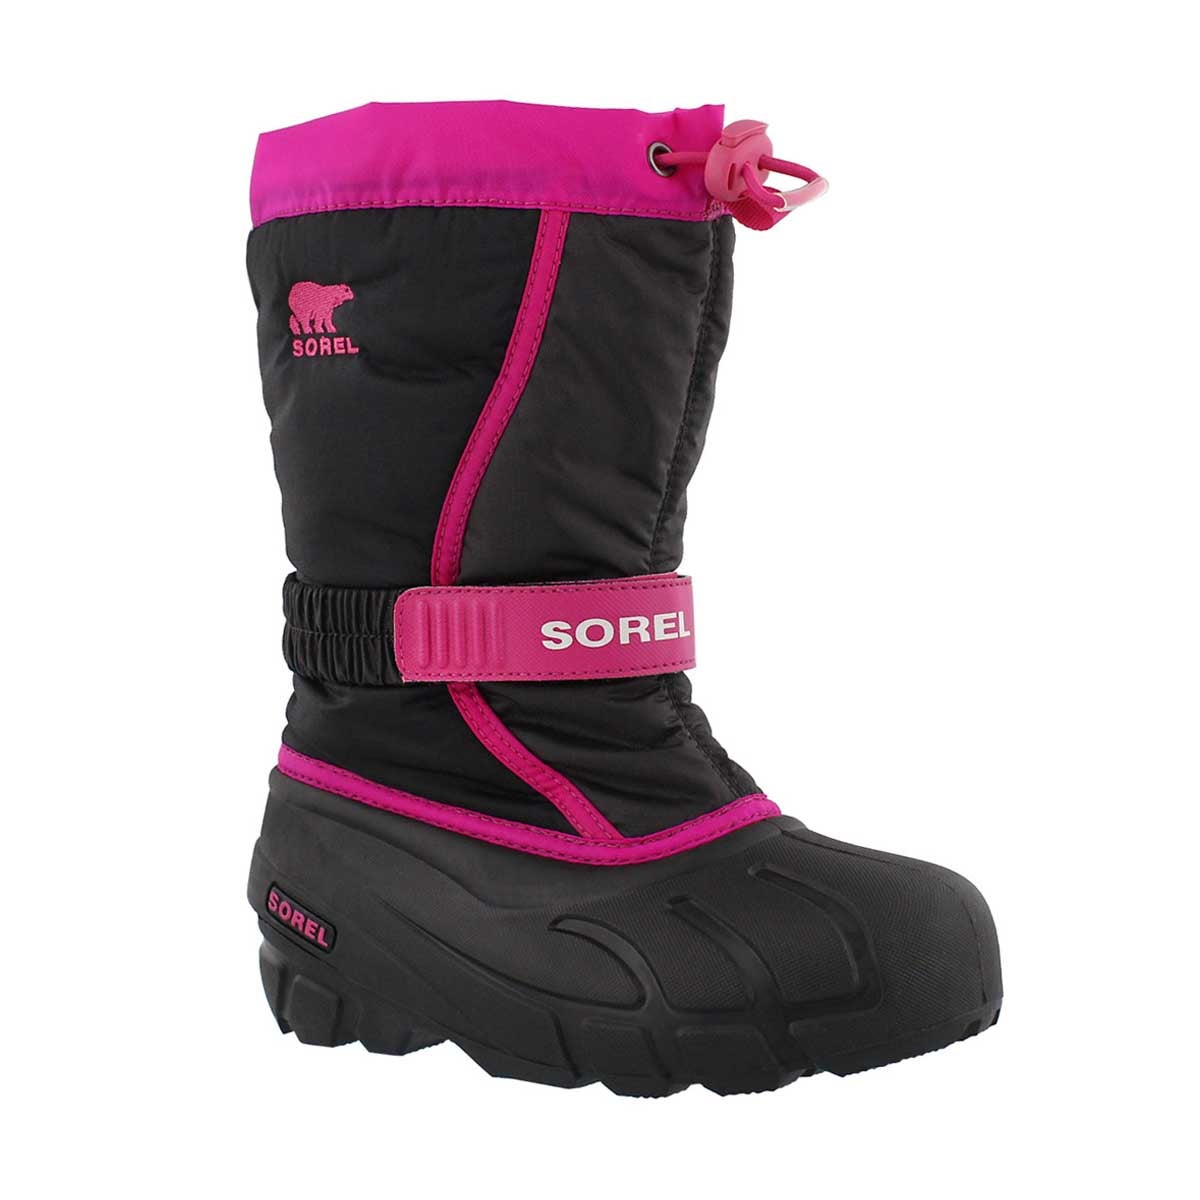 Girls' FLURRY pink/black pull on winter boots